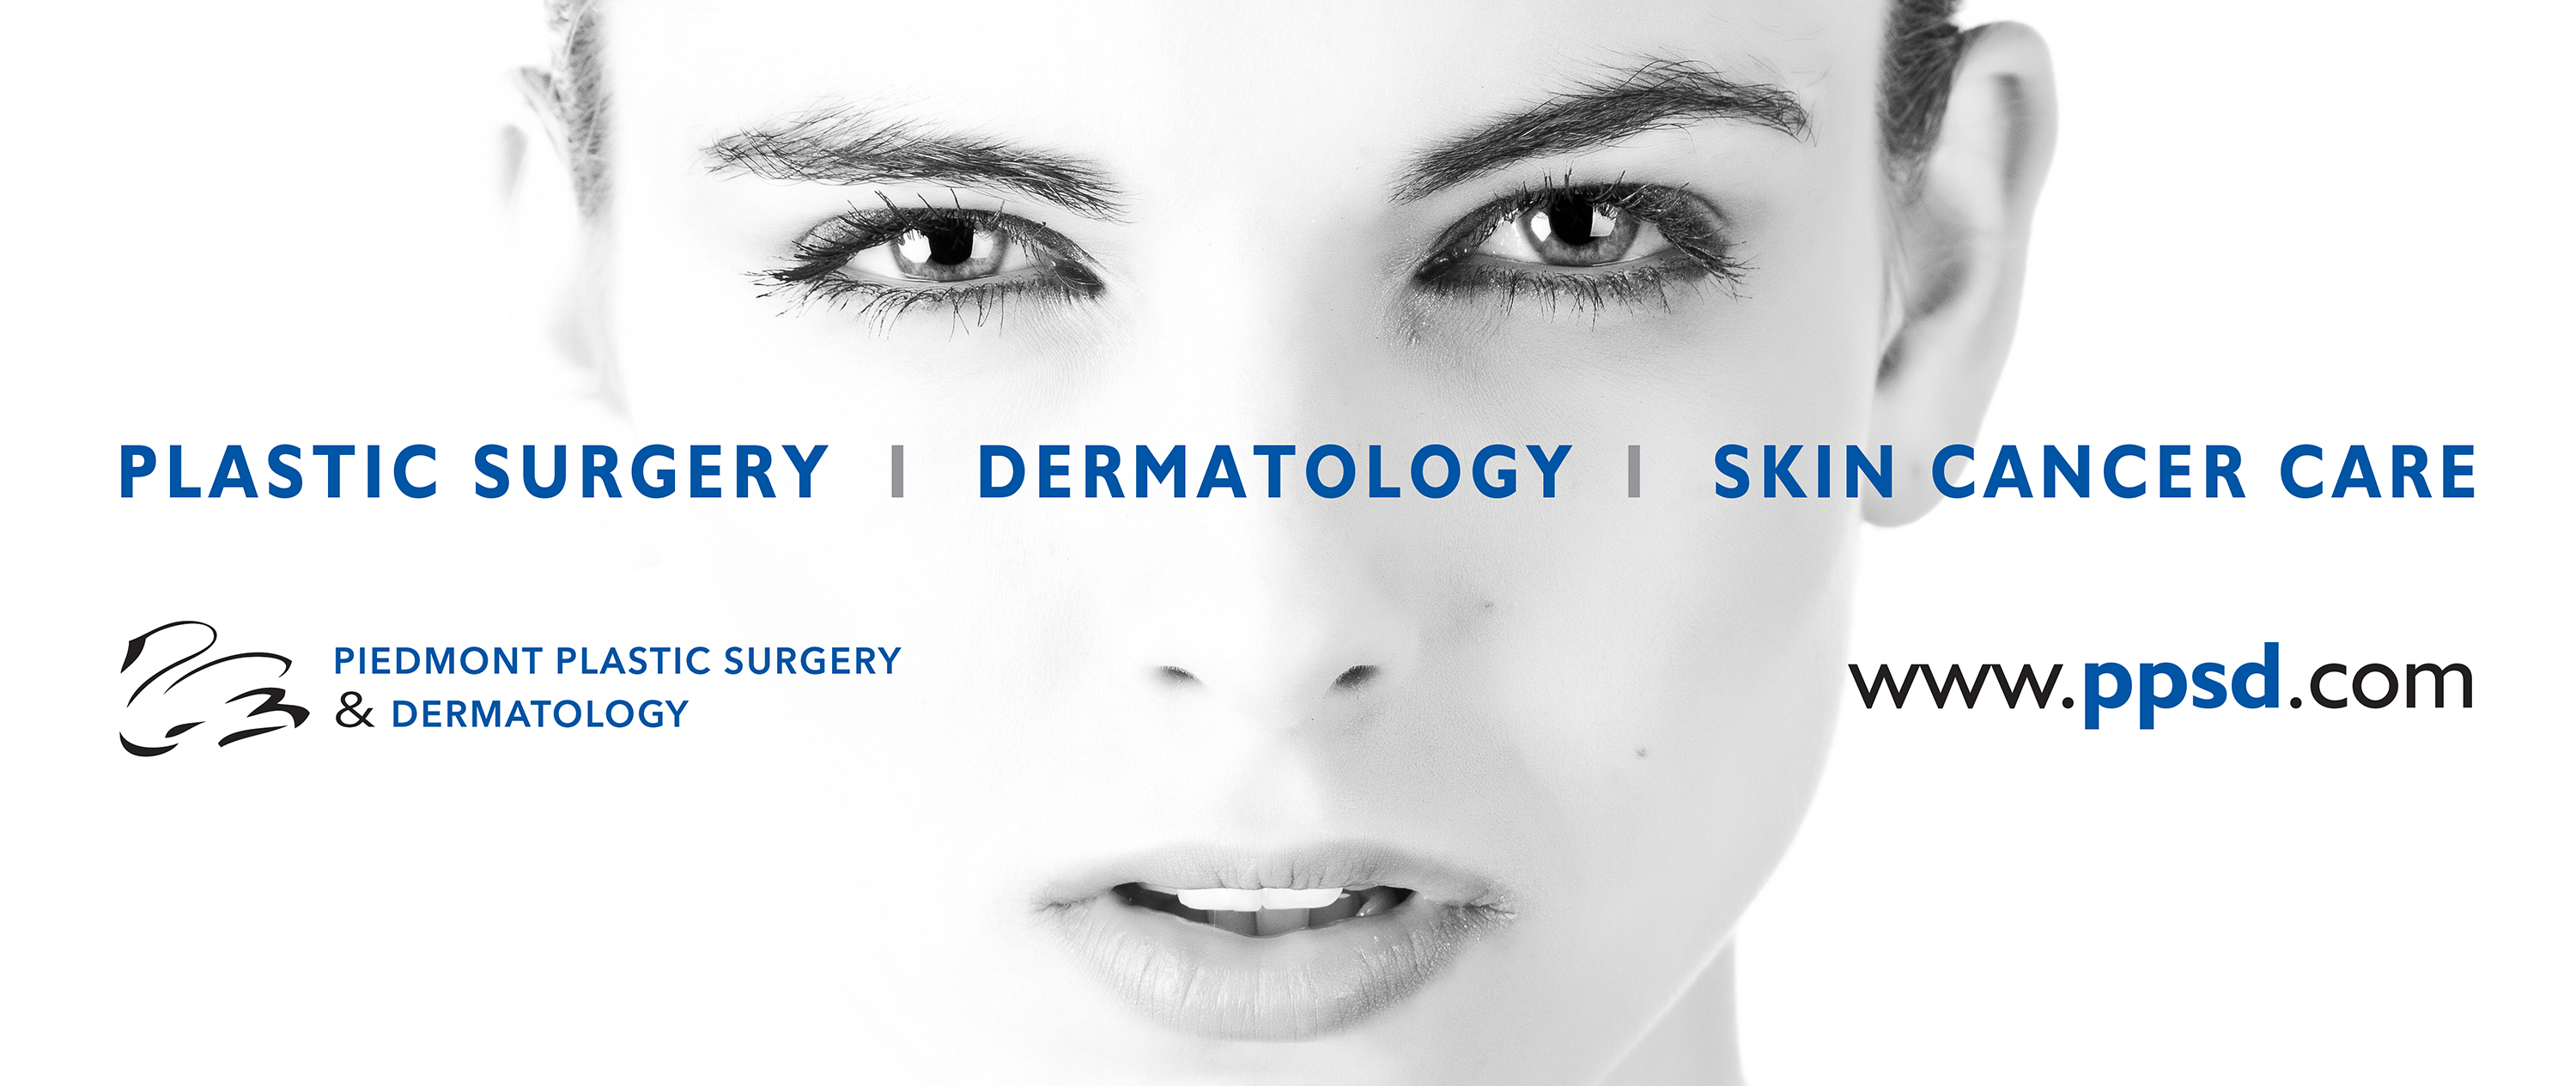 Piedmont Plastic Surgery and Dermatology | Charlotte, NC